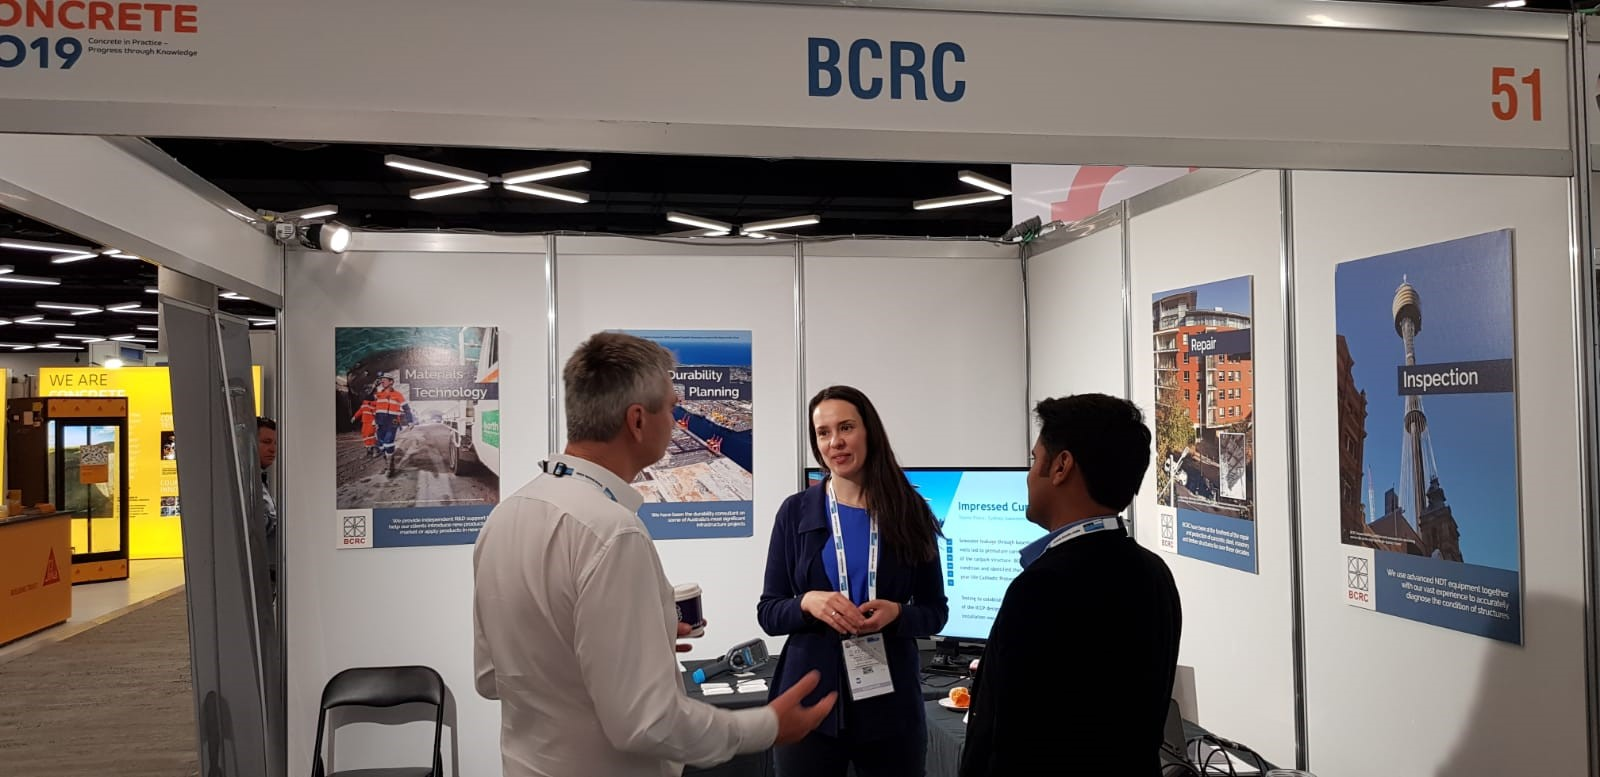 BCRC durability consultant talking with their clients at Concrete 2019